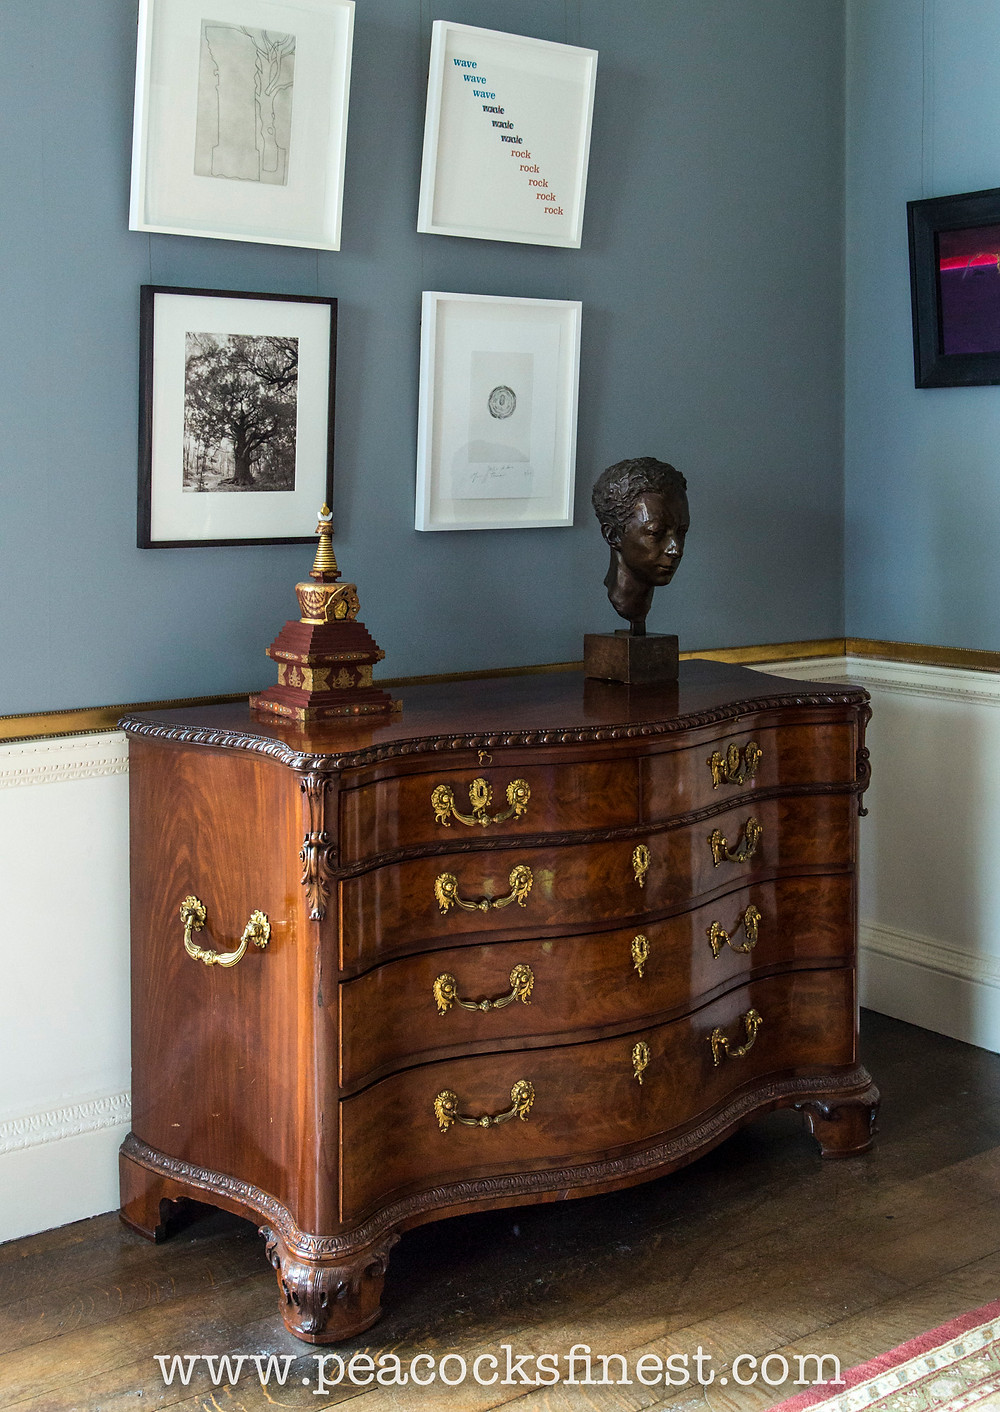 The magnificent commode by William Vile was brought by Princess Mary from St James's Palace.